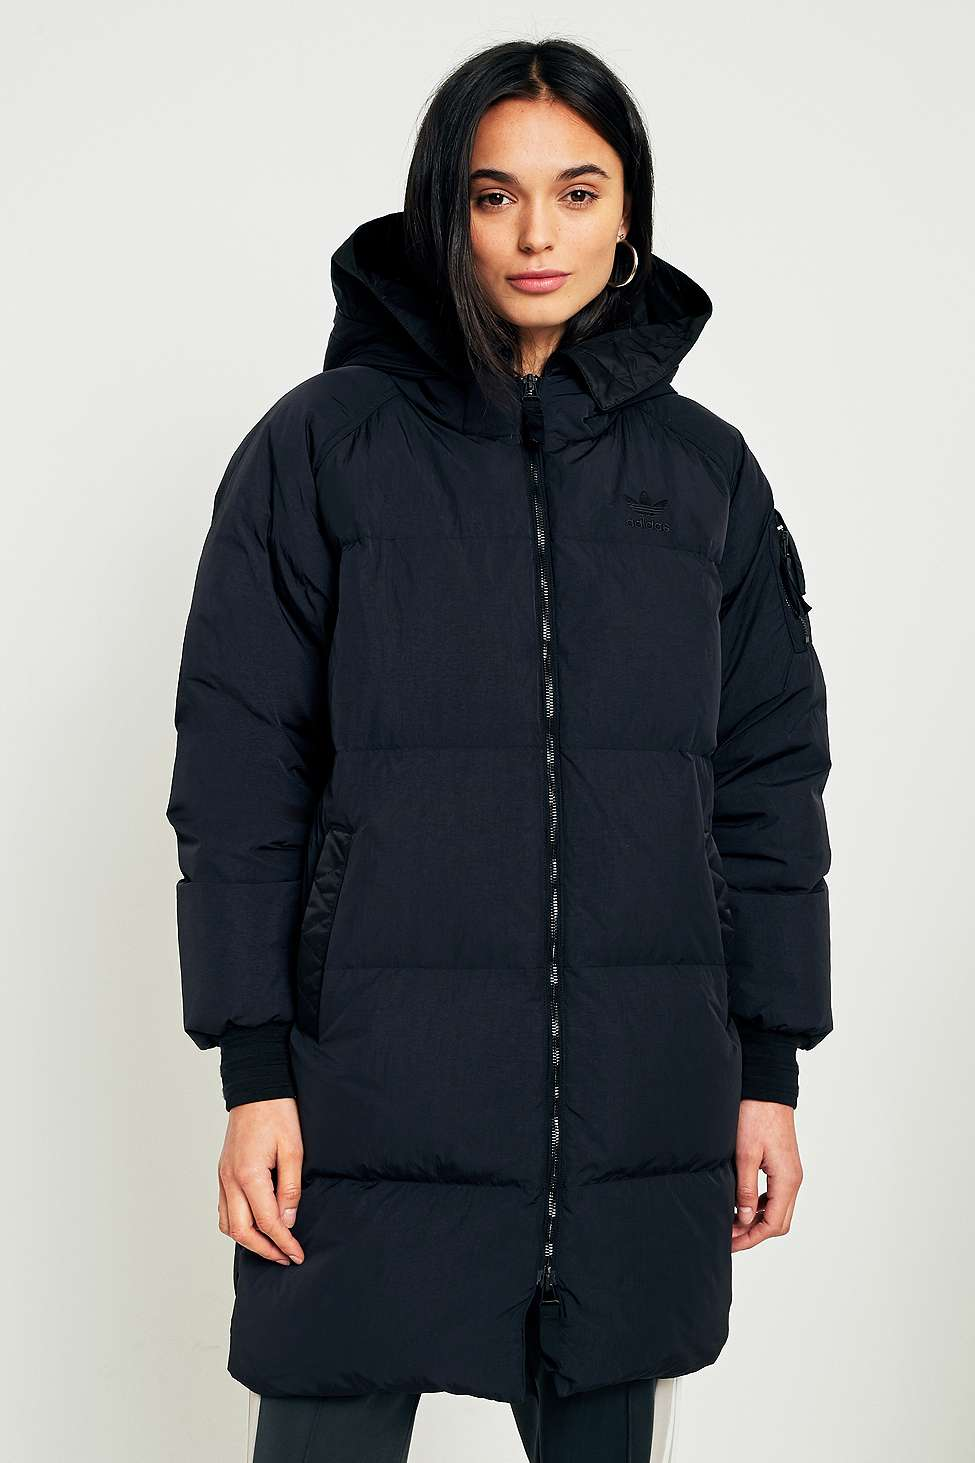 adidas Originals Black Long Puffer Jacket, Black